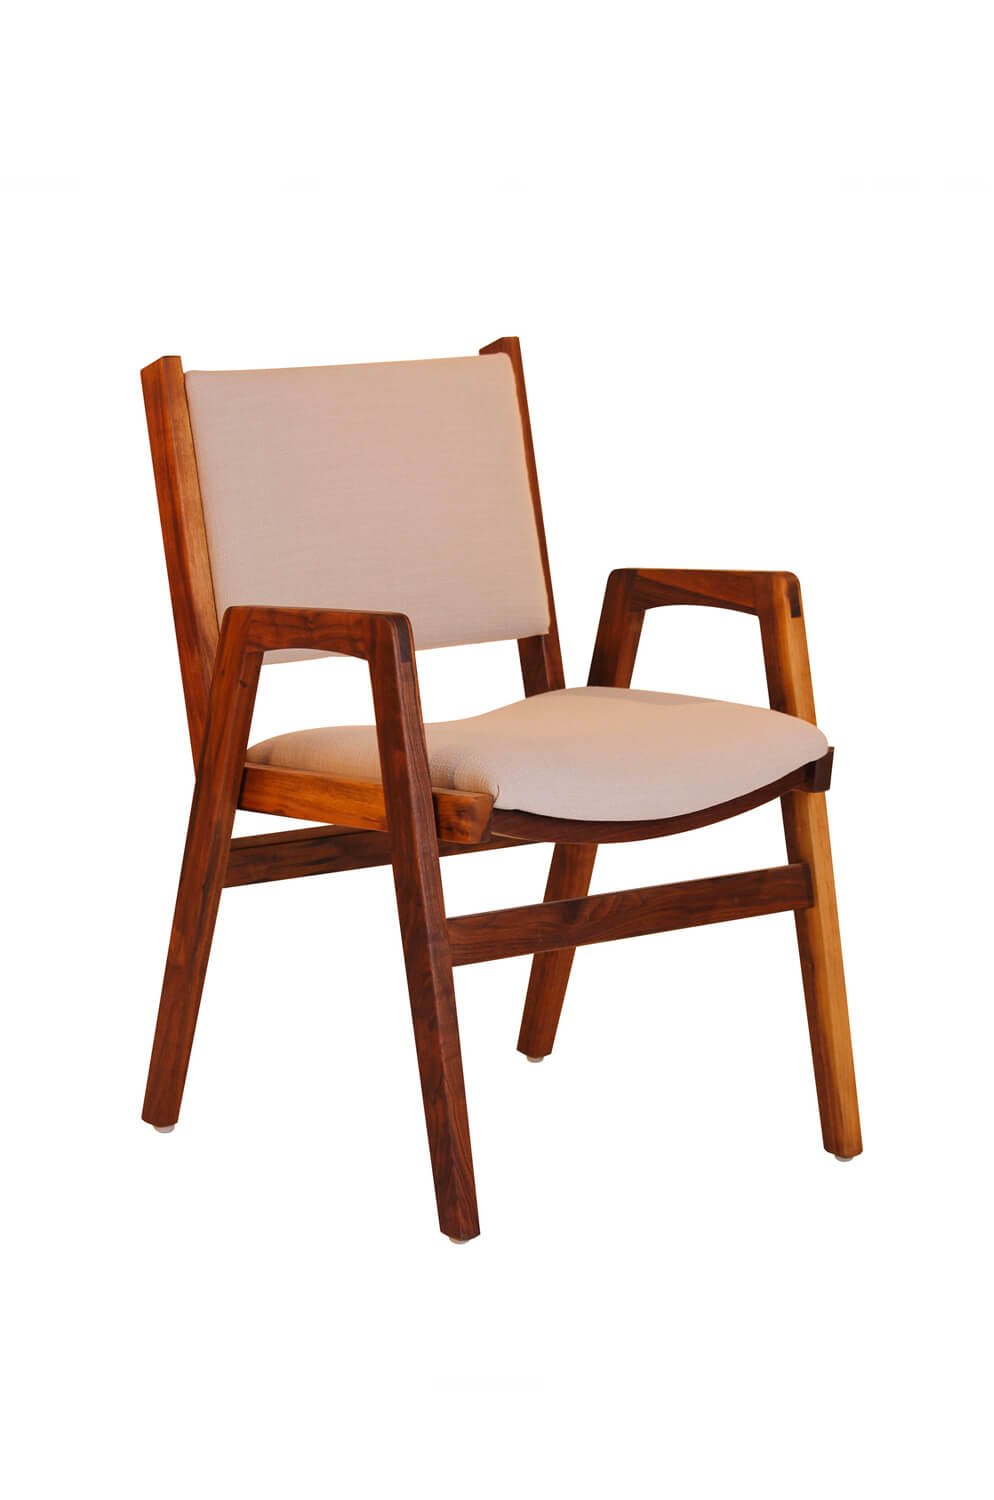 Darafeev's Spencer Upholstered Stacking Wood Arm Chair